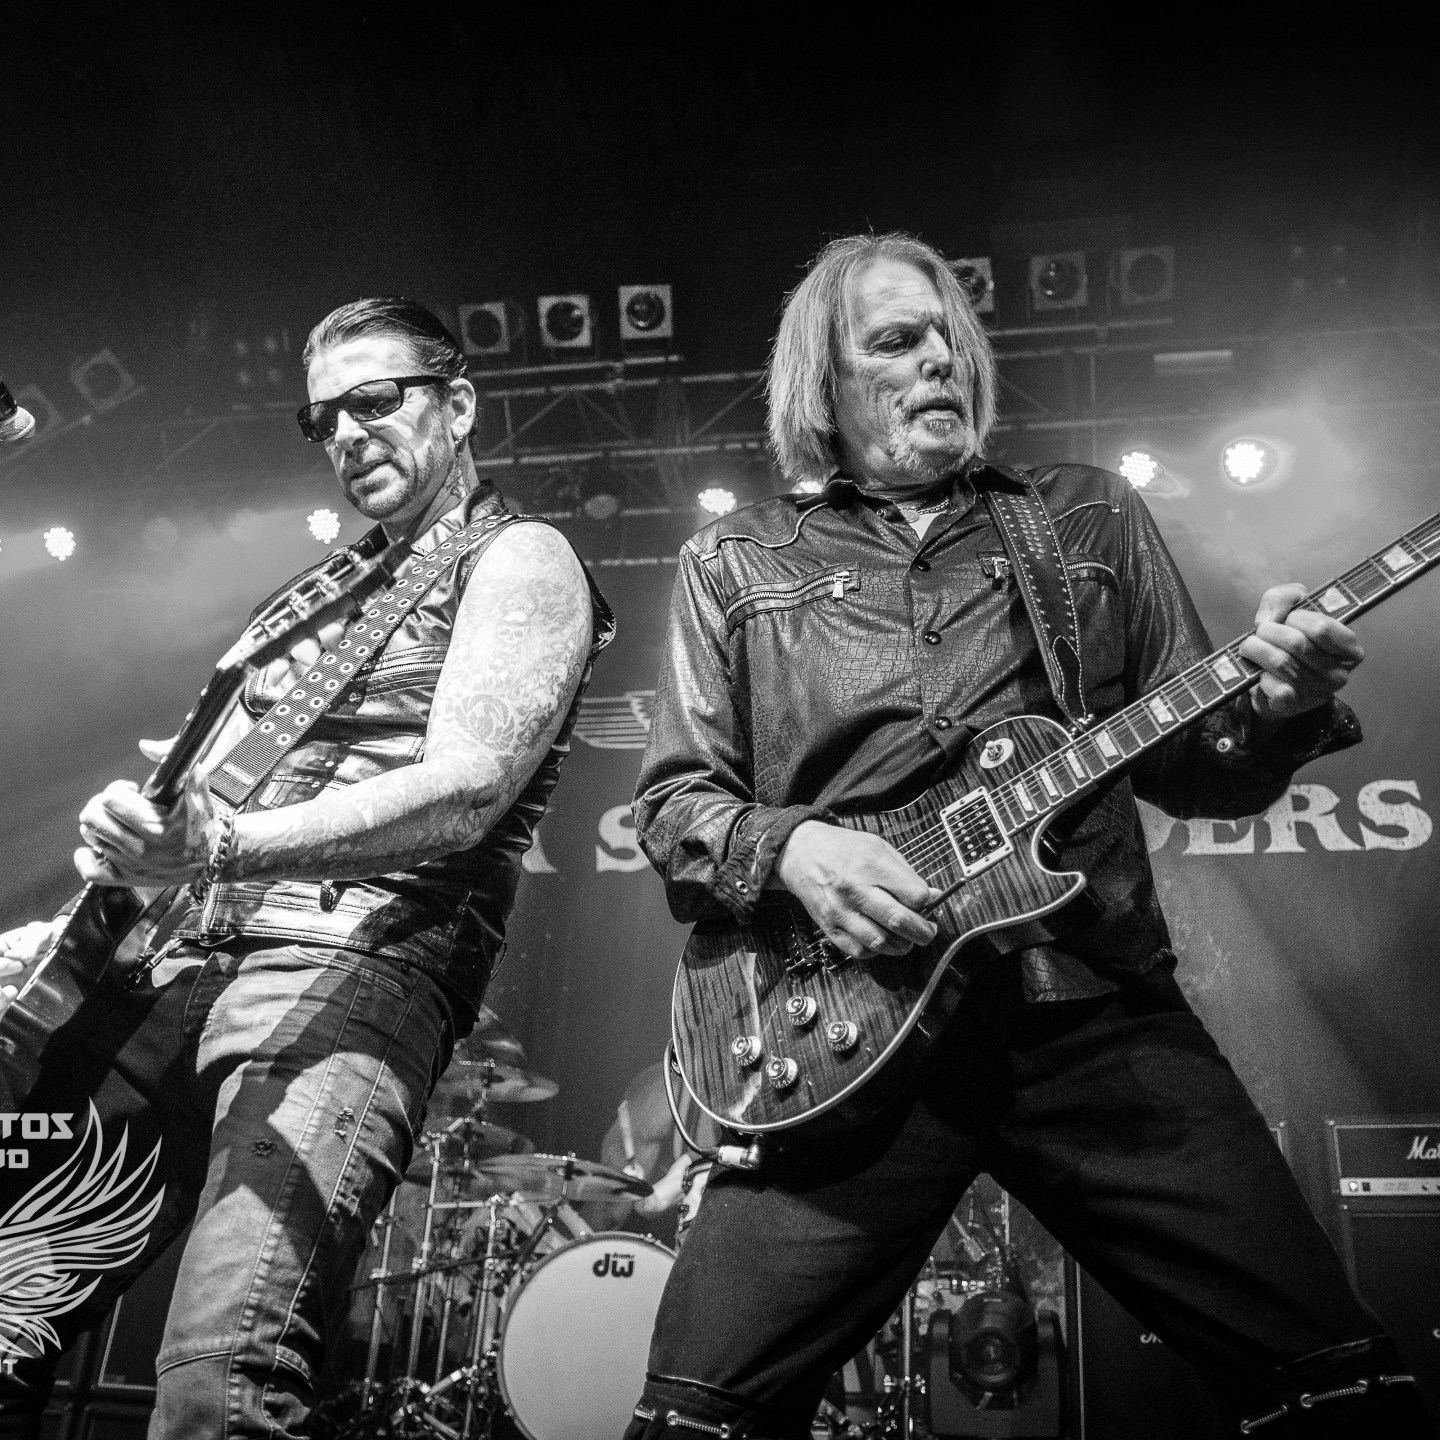 Gig Review: Black Star Riders/Gun (O2 ABC – Glasgow, 15/03/17)